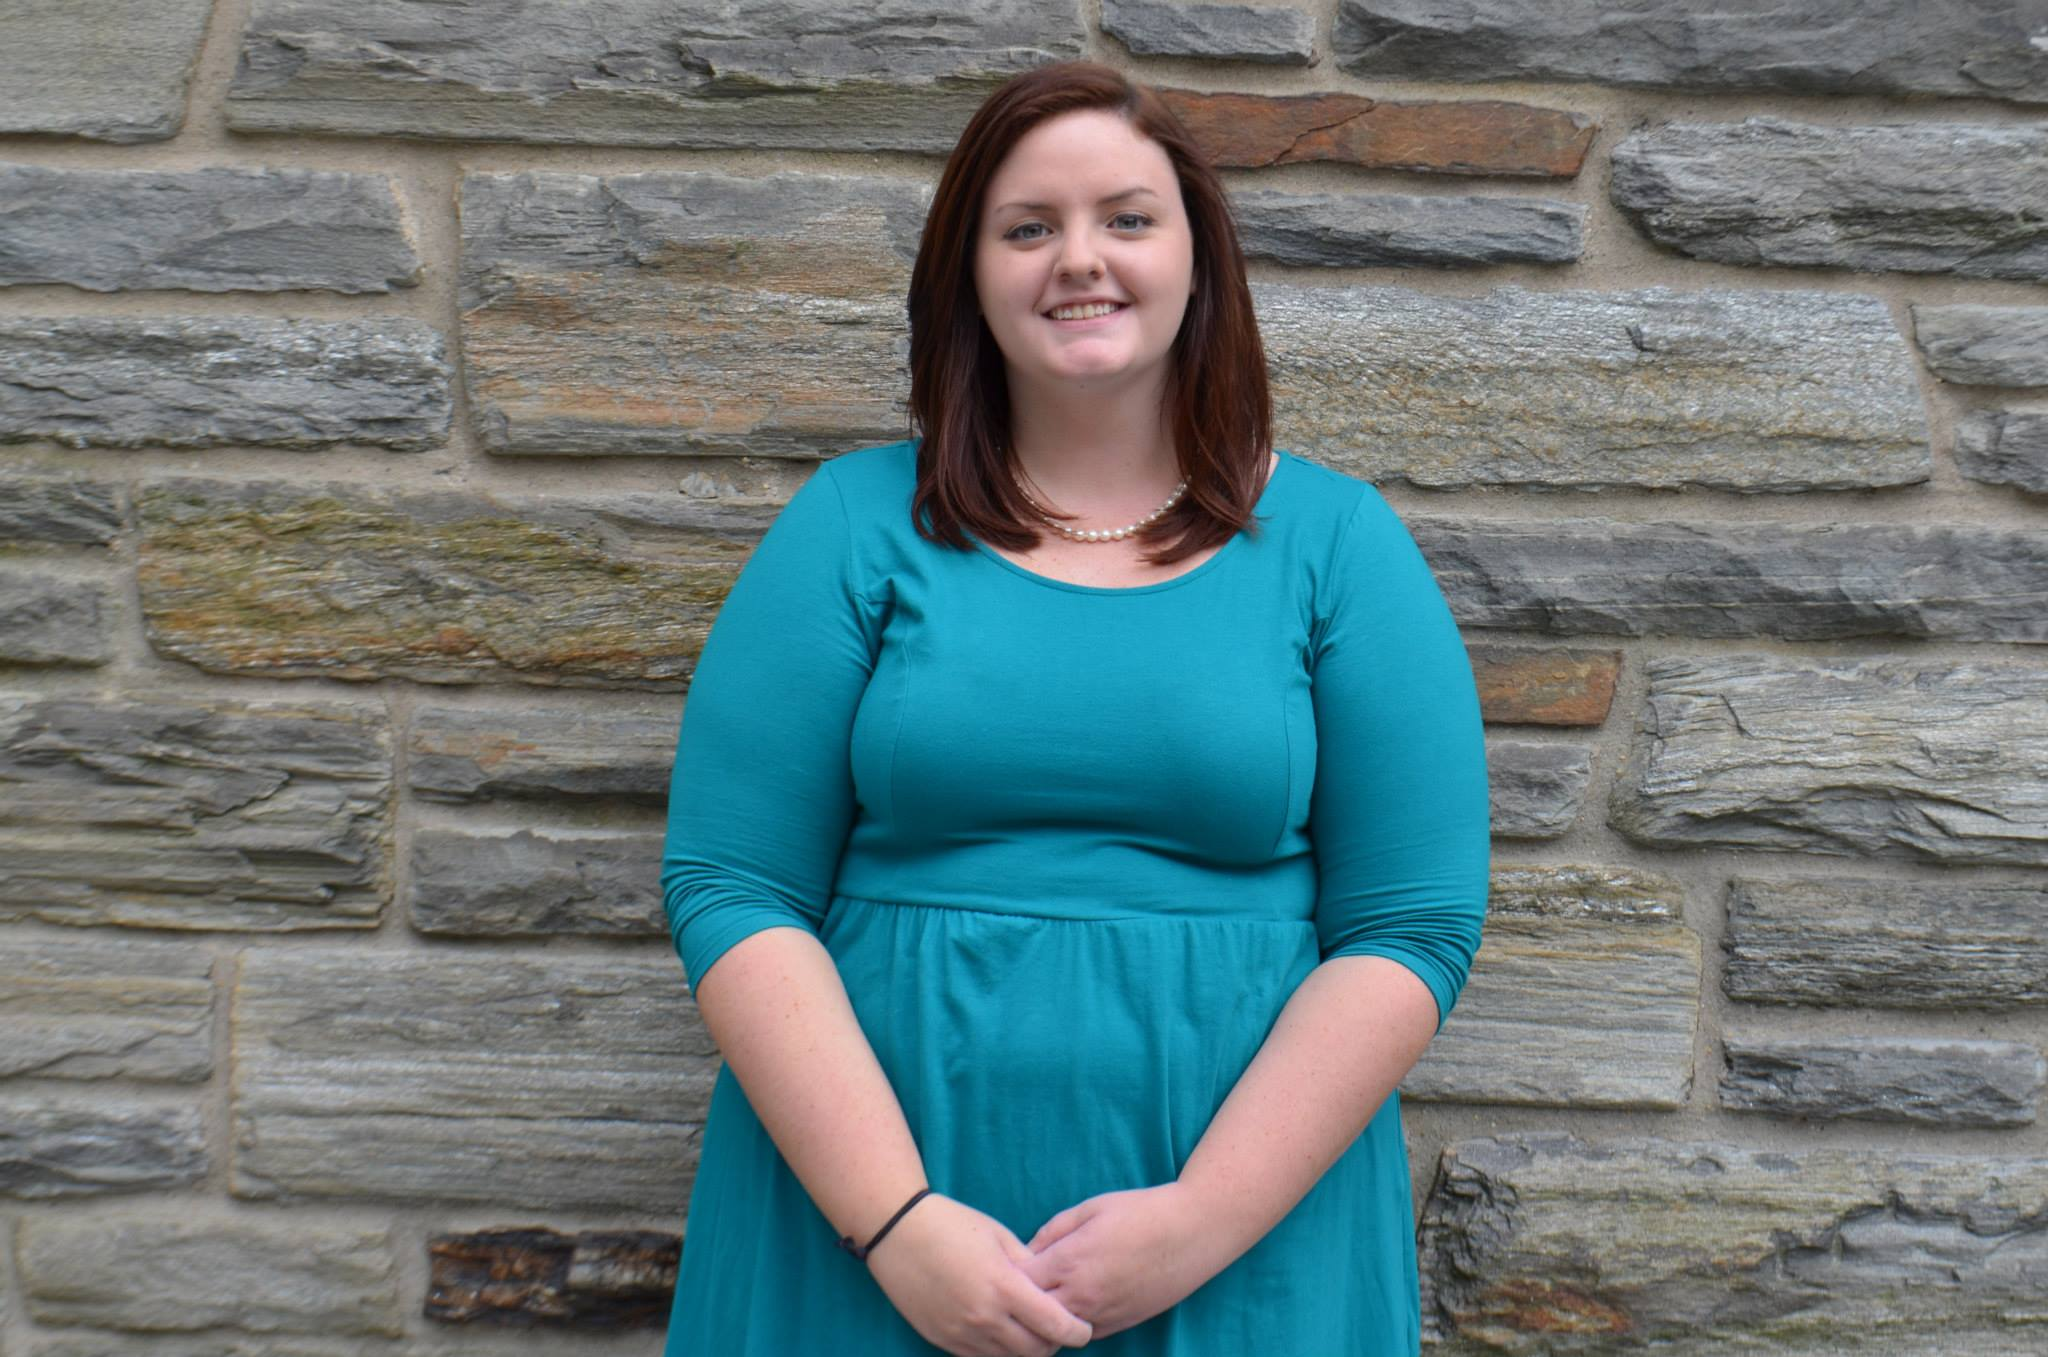 Corinne McGrath is standing in front of a stone wall. She is wearing a turquoise dress and a string of pearls.